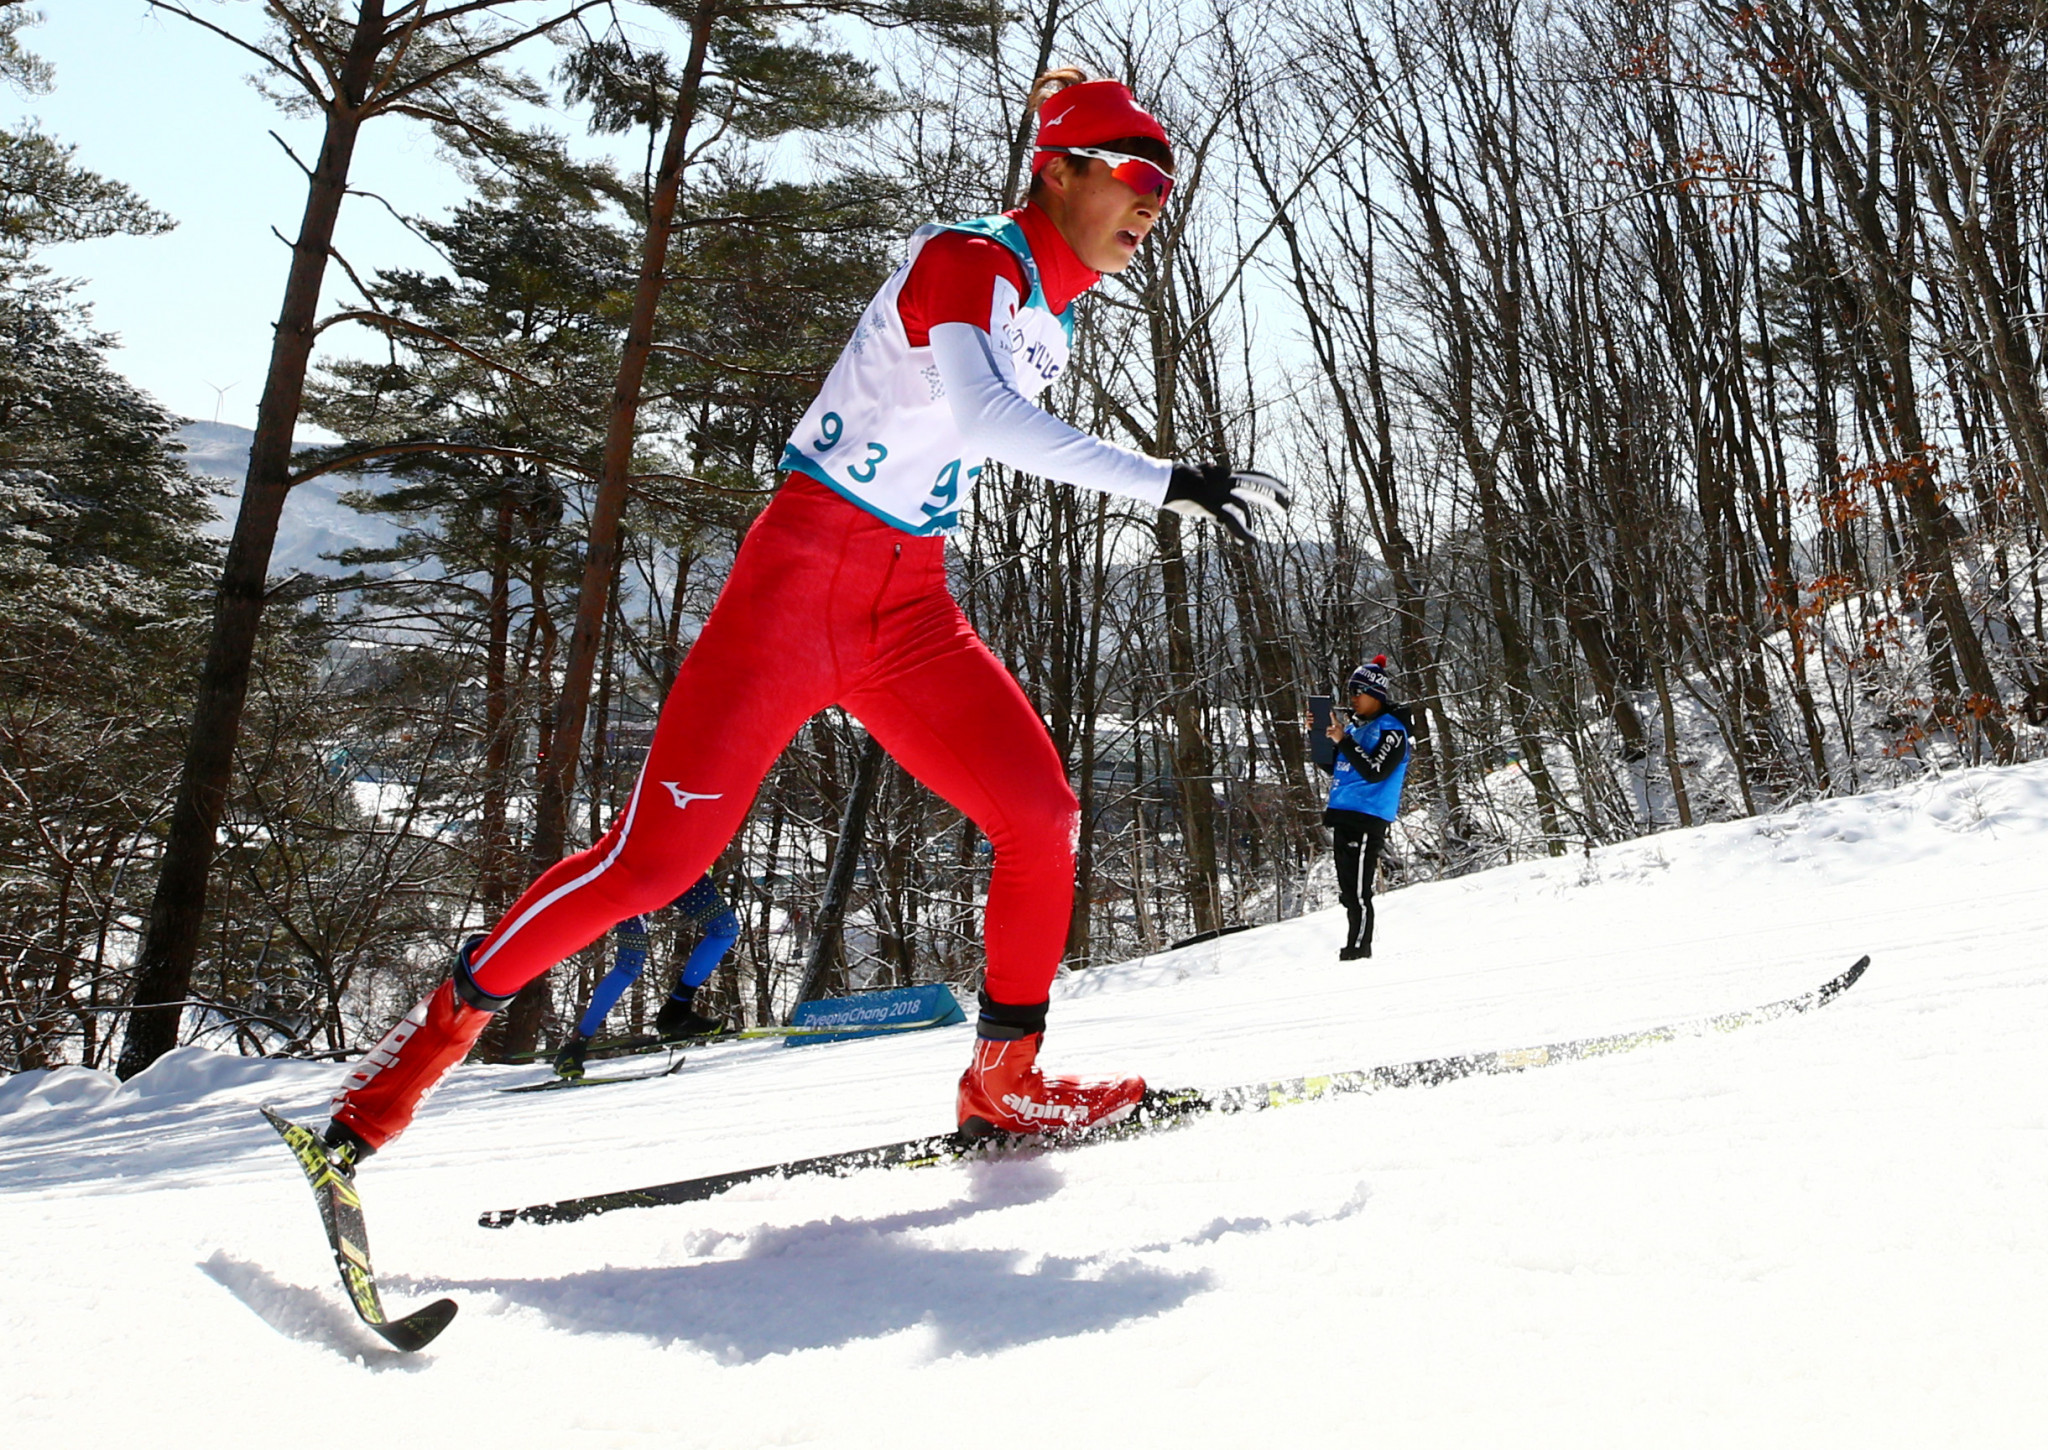 Kawayoke to lead hosts Japan's charge at World Para Nordic Skiing World Cup Finals in Sapporo